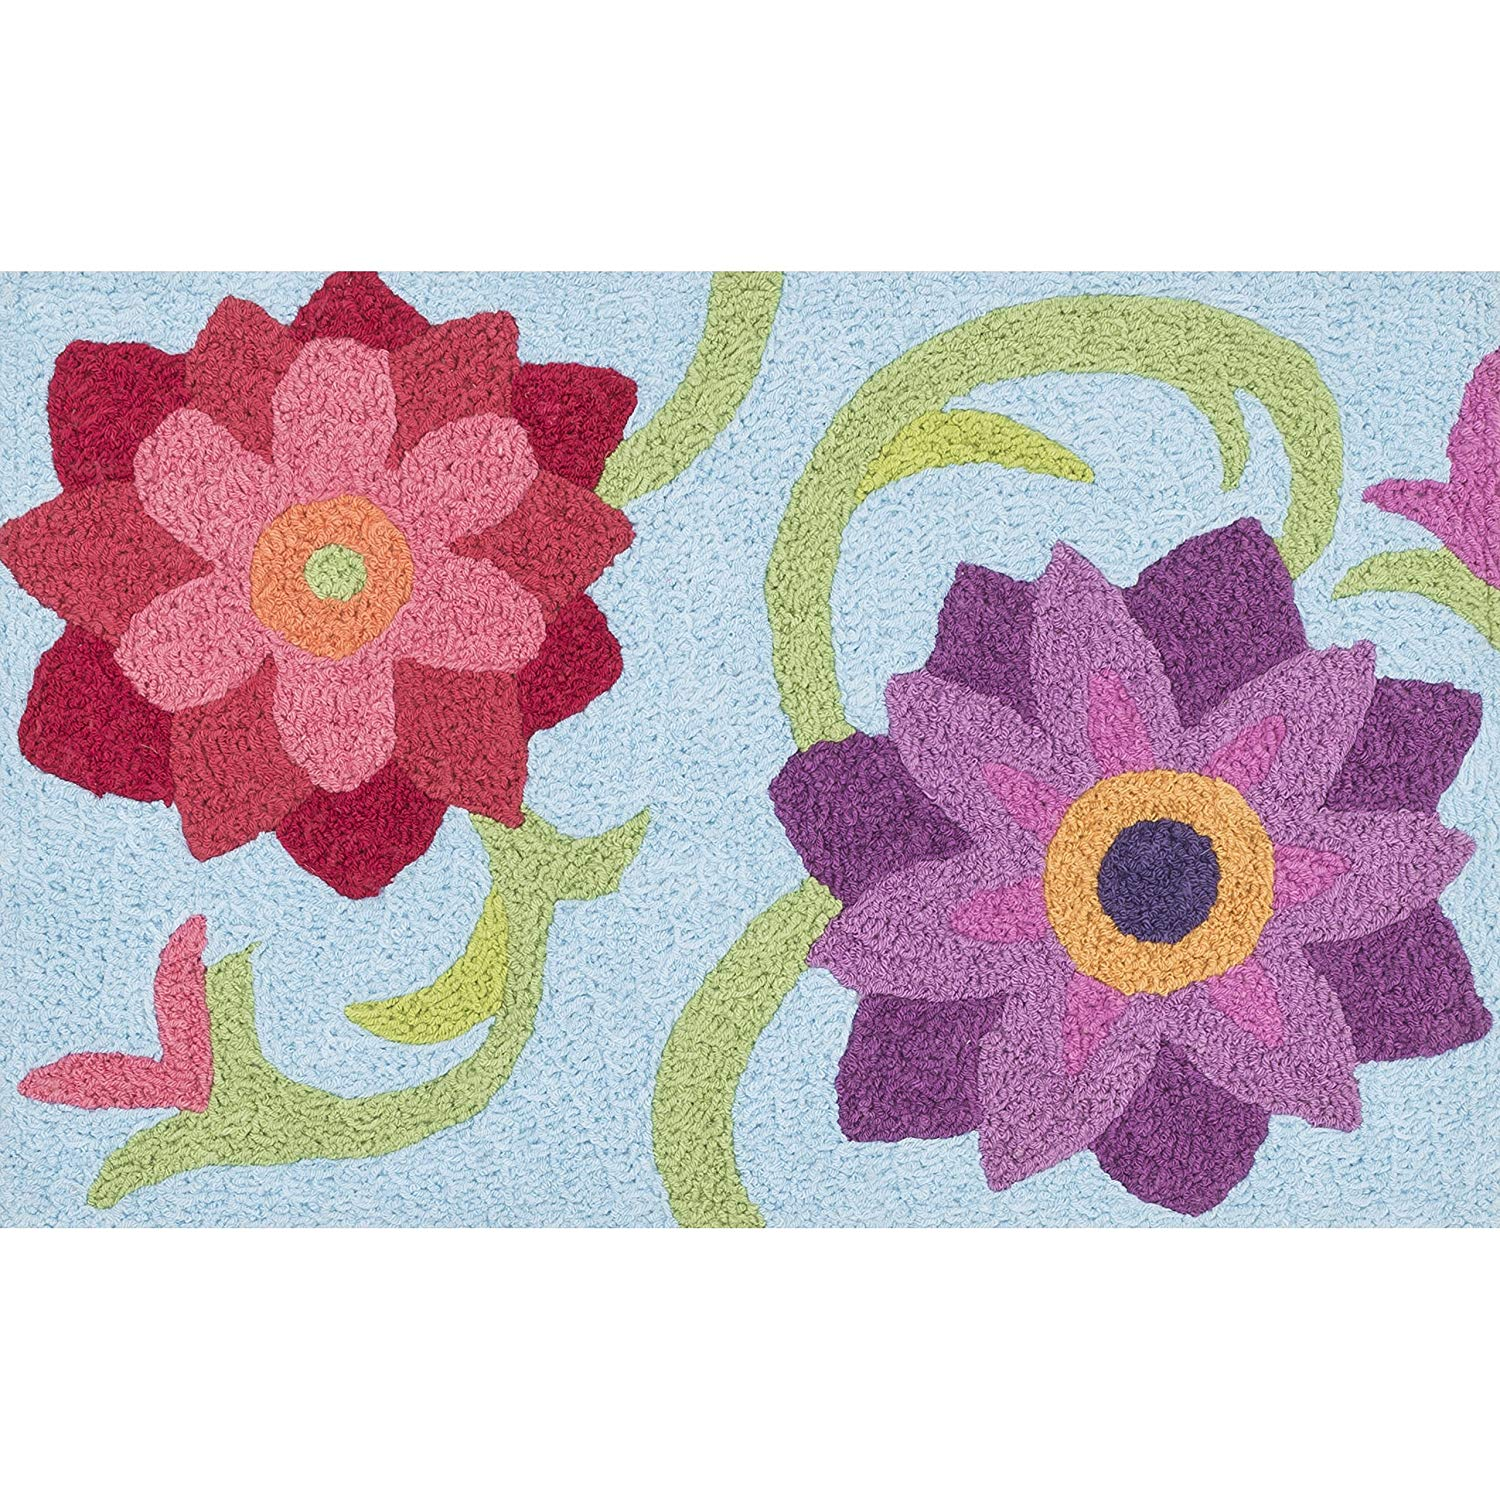 Childrens Area Rug Flowers Theme Nature Pattern Play Mat Pink Red Purple Floral Nature Blooming Flower Carpet Indoor Kids Playroom Bathroom